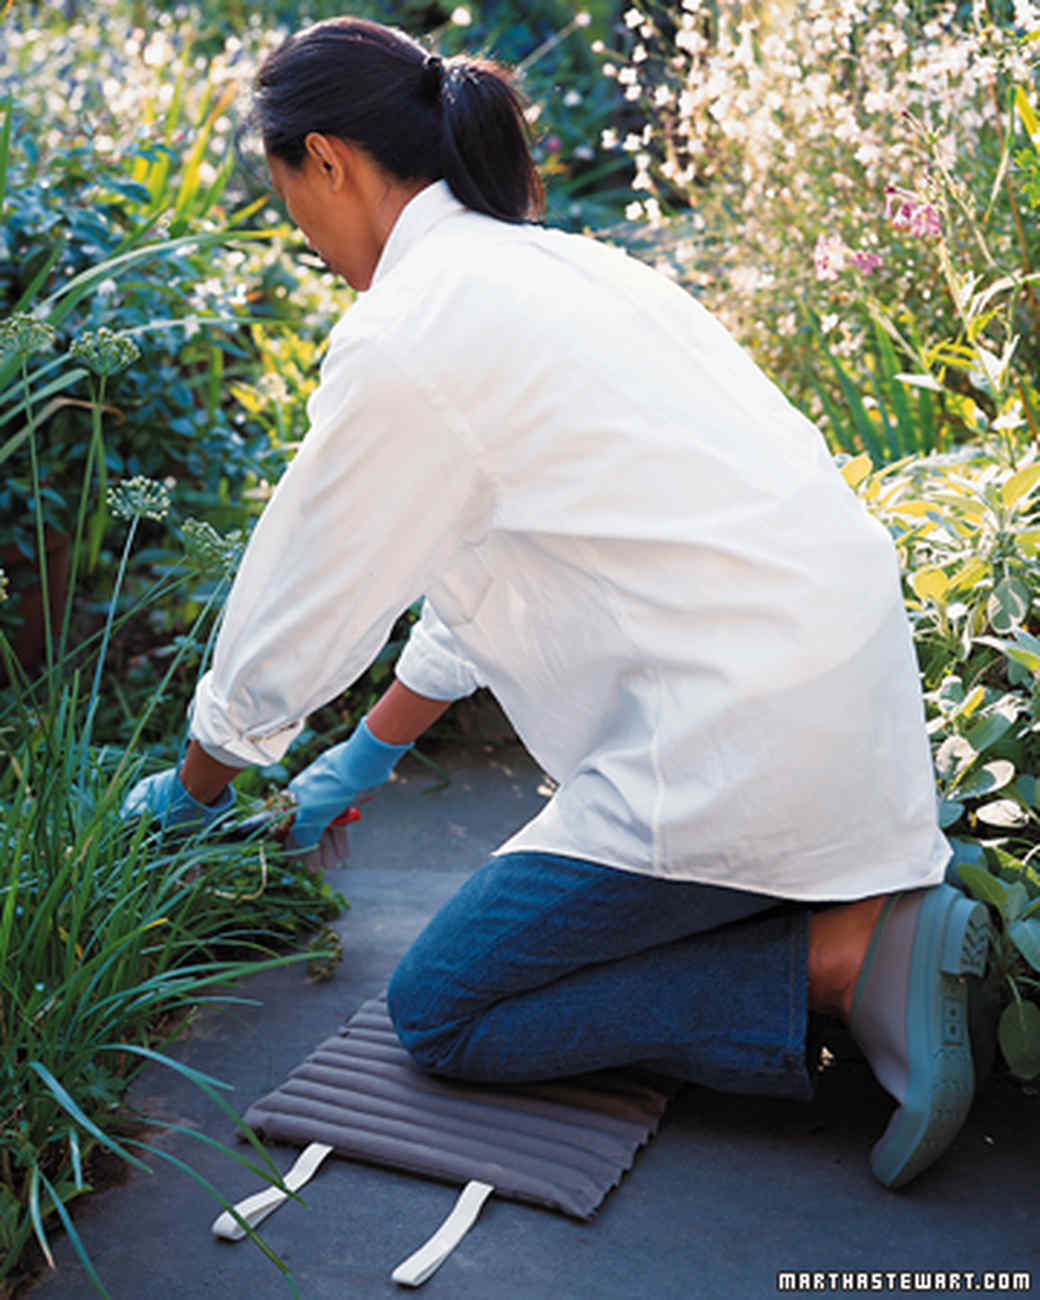 24 Smart Gardening Tips and Tricks | Martha Stewart